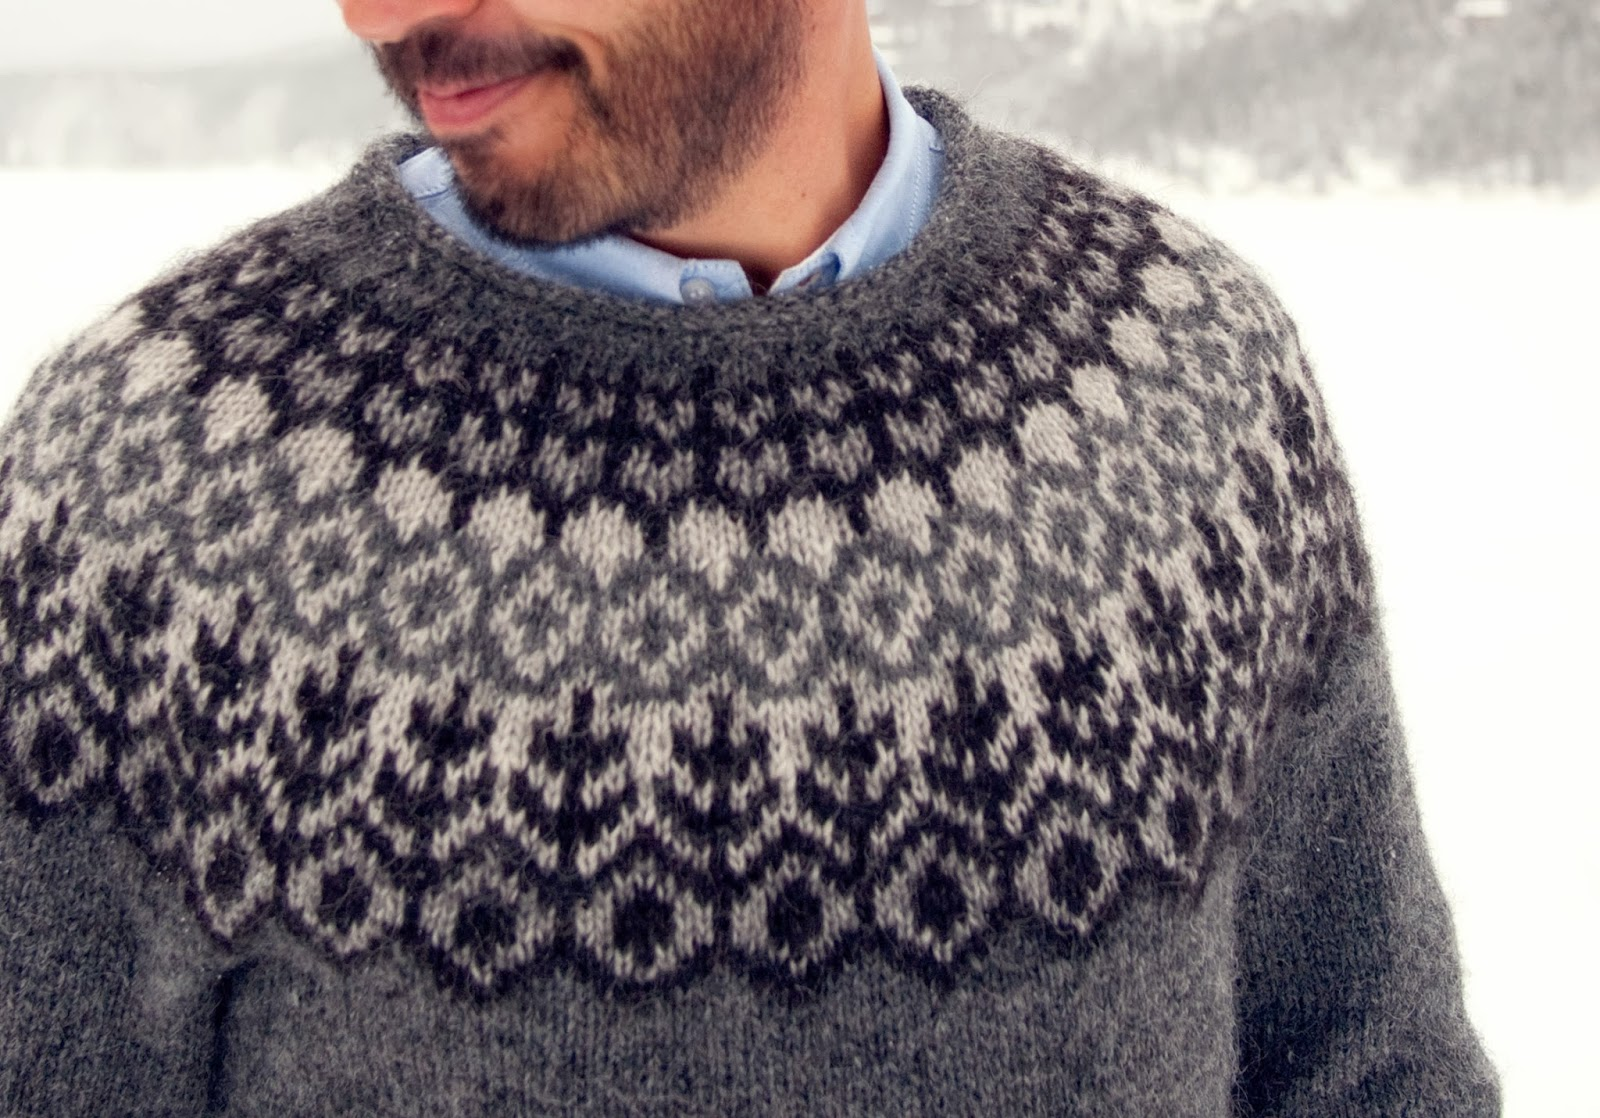 ec24b83da72e6 Eddie s new sweater was finished in time for our most recent snowstorm and